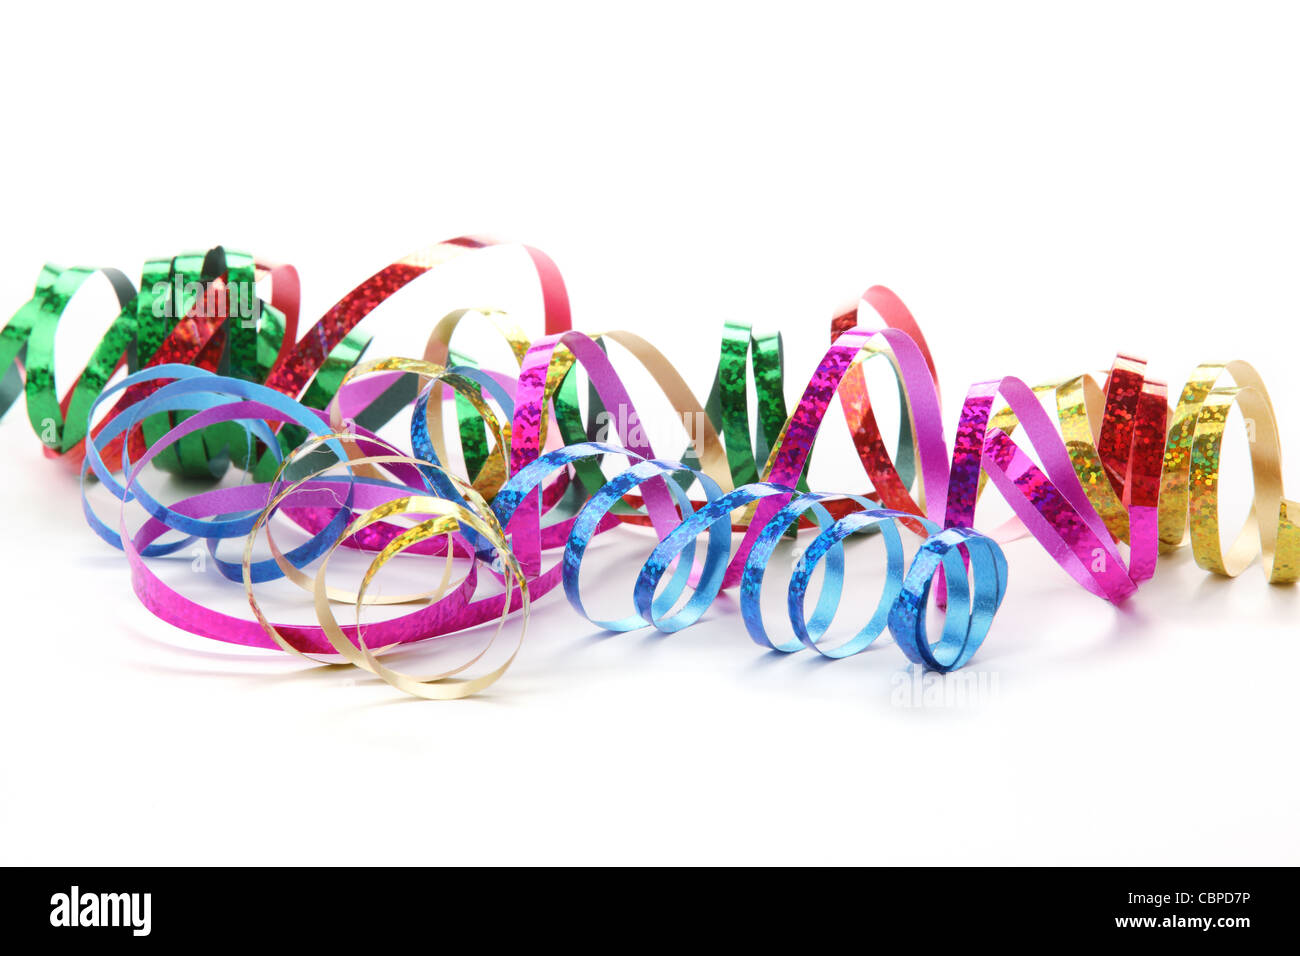 Colorful streamers on white background - Stock Image